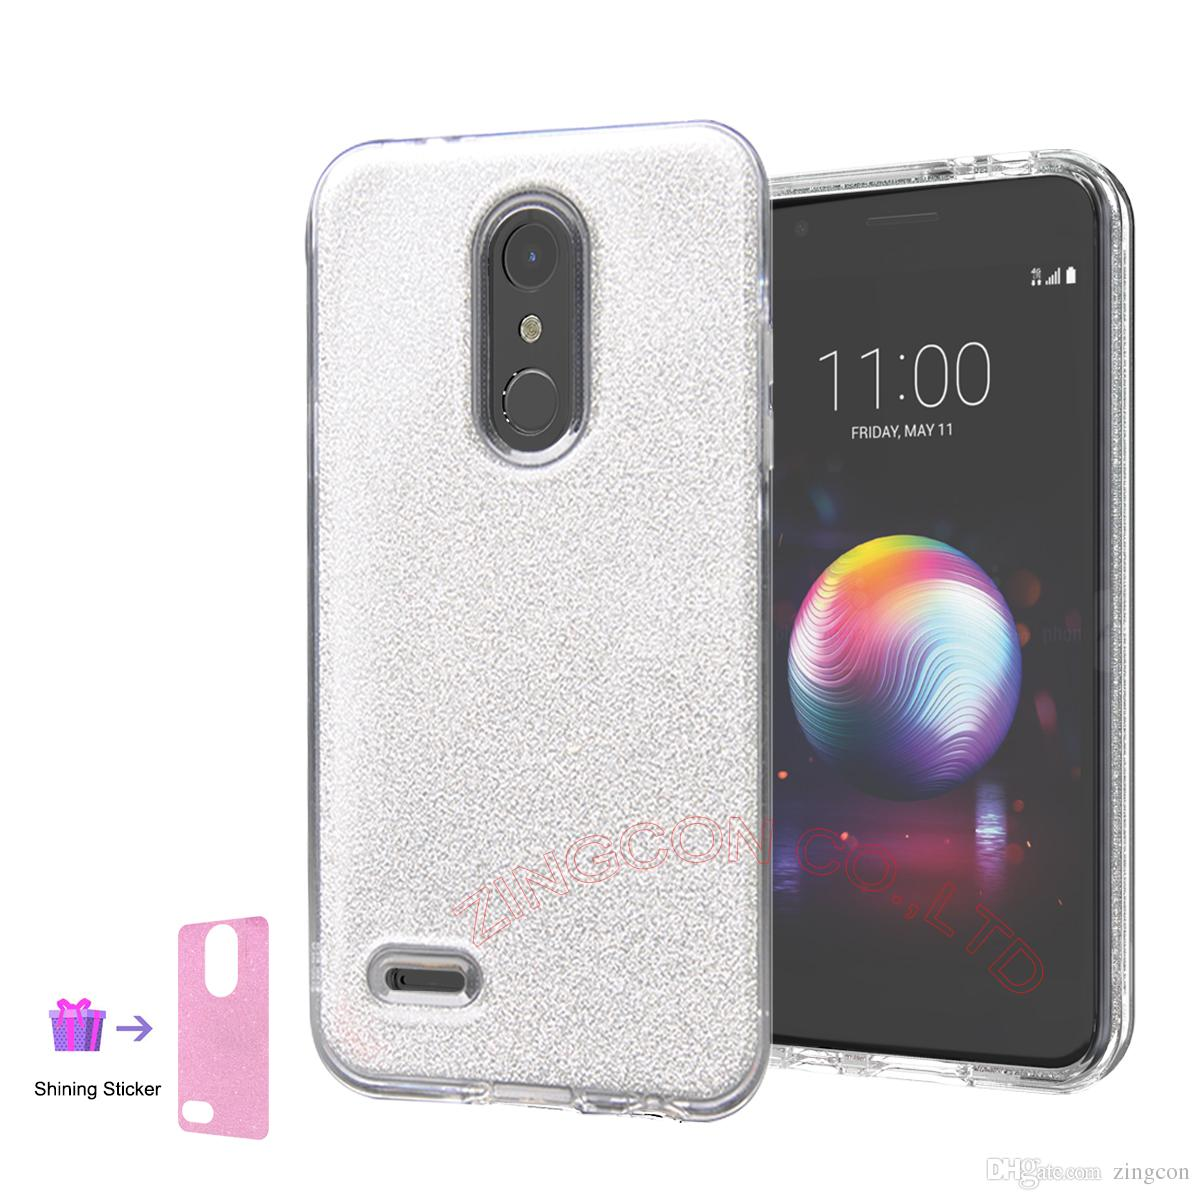 Phone Case for LG K10,LG Premier Pro LTE,LG K30,Soft TPU & Hard PC Dual  Layer Protective DIY Clear Case with 2 slim/Thin Stickers Inside